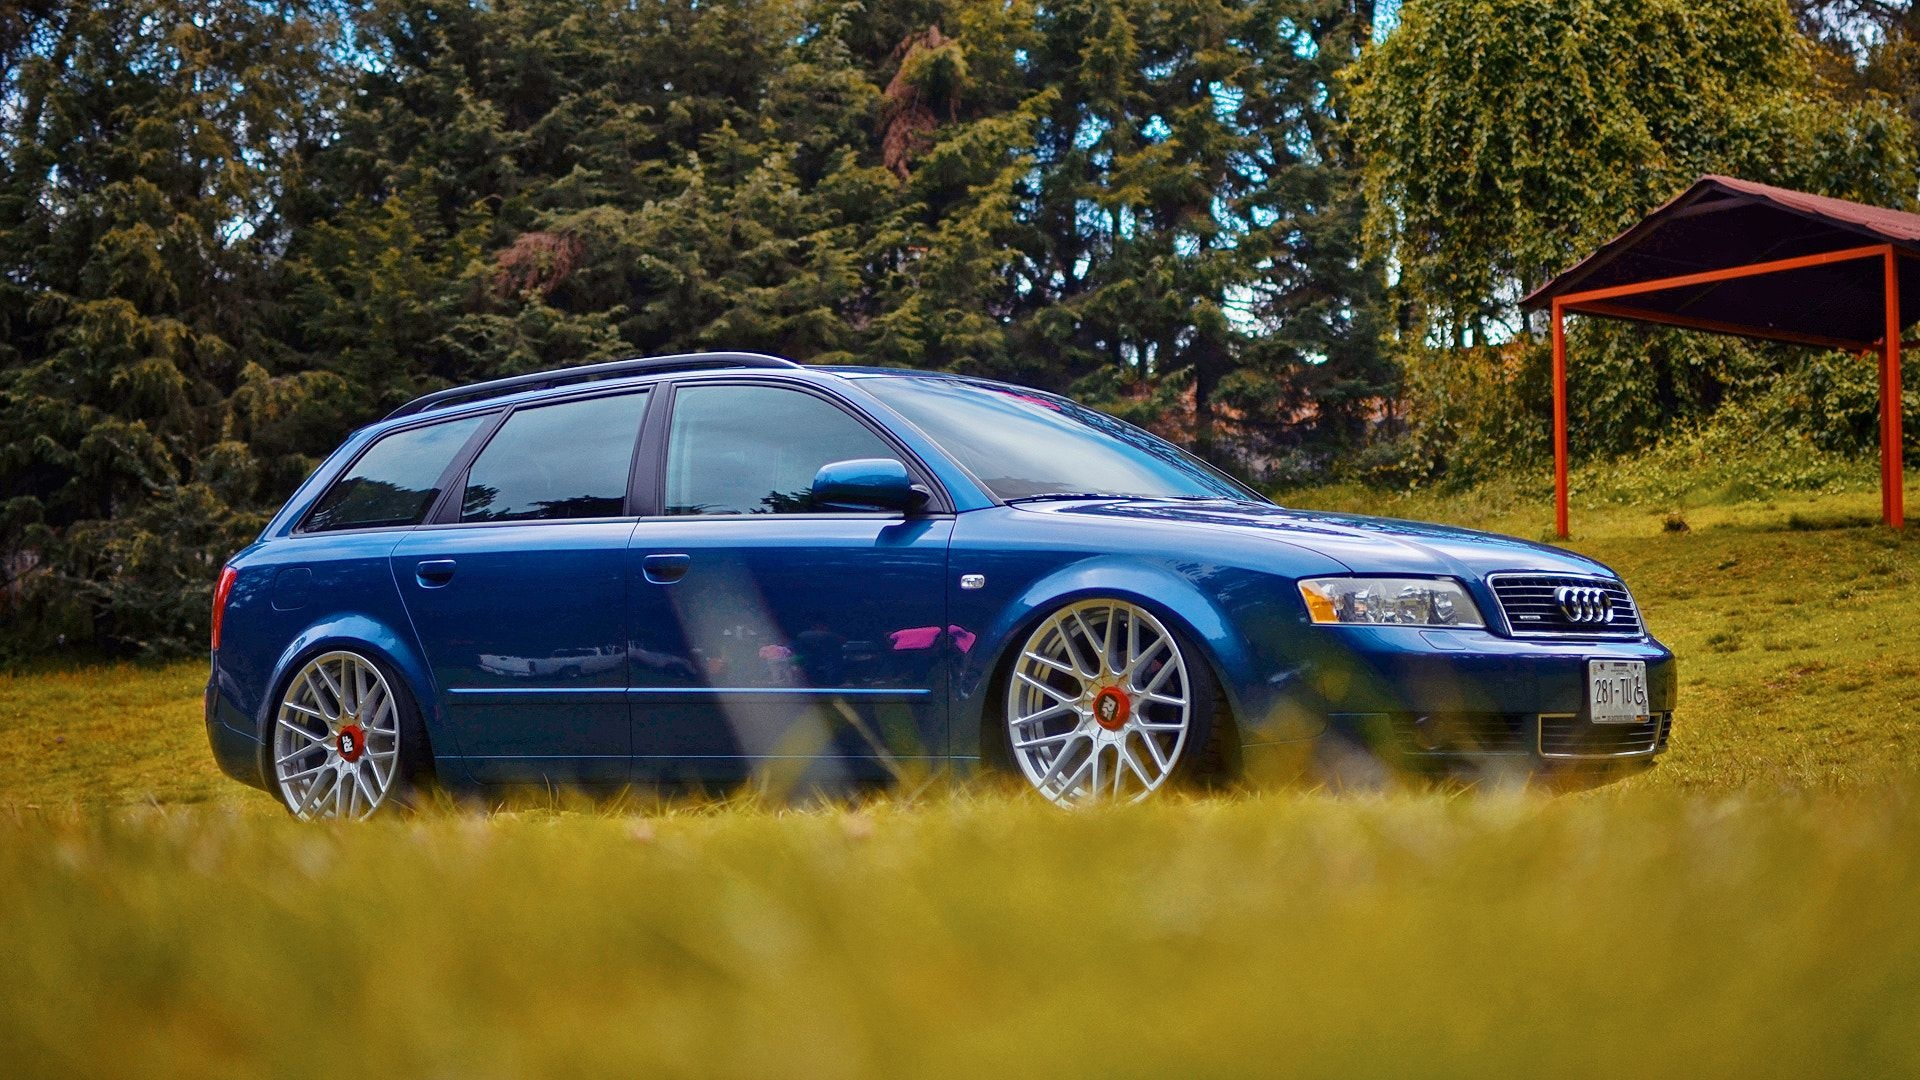 Audi A4 Modified Luxury Audi Avant Amazing Audi Avant Bagged Sittin In Rse Rotiforms-1171 Of Inspirational Audi A4 Modified